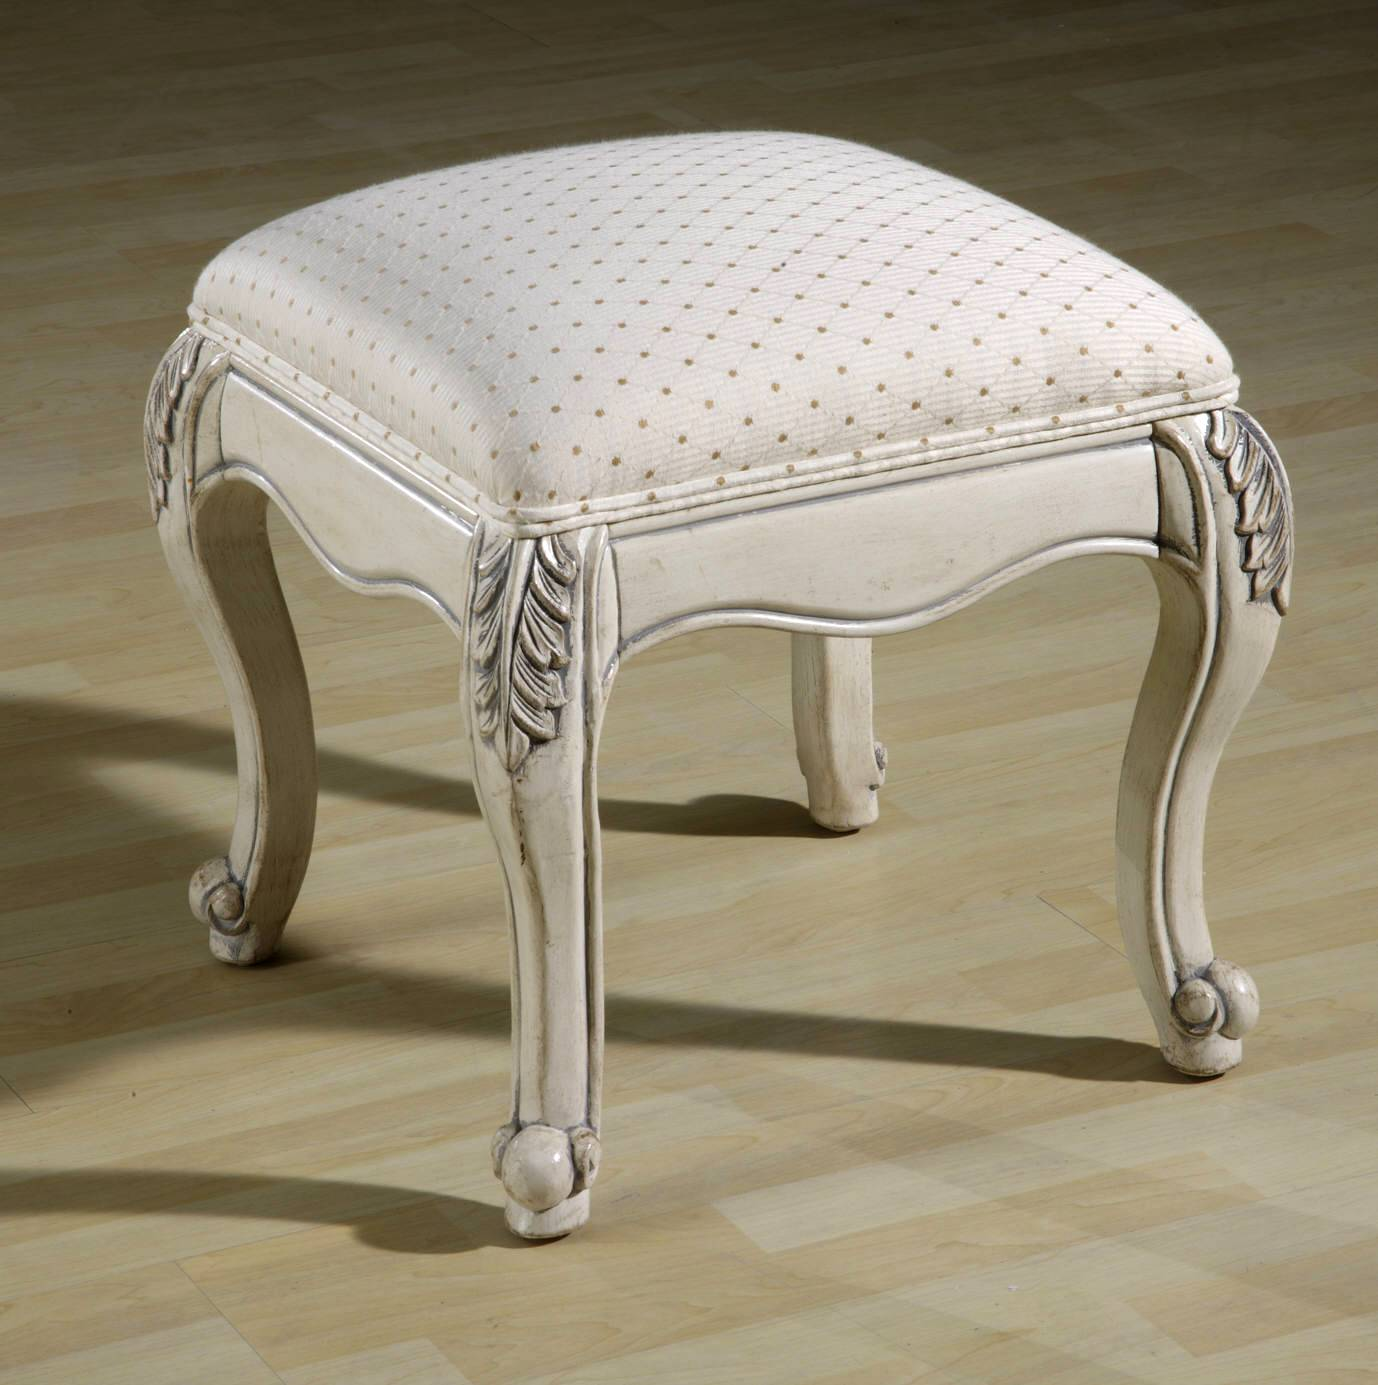 Clic Style Vanity Bench Seat With White Cushion And Crafted Wood Legs